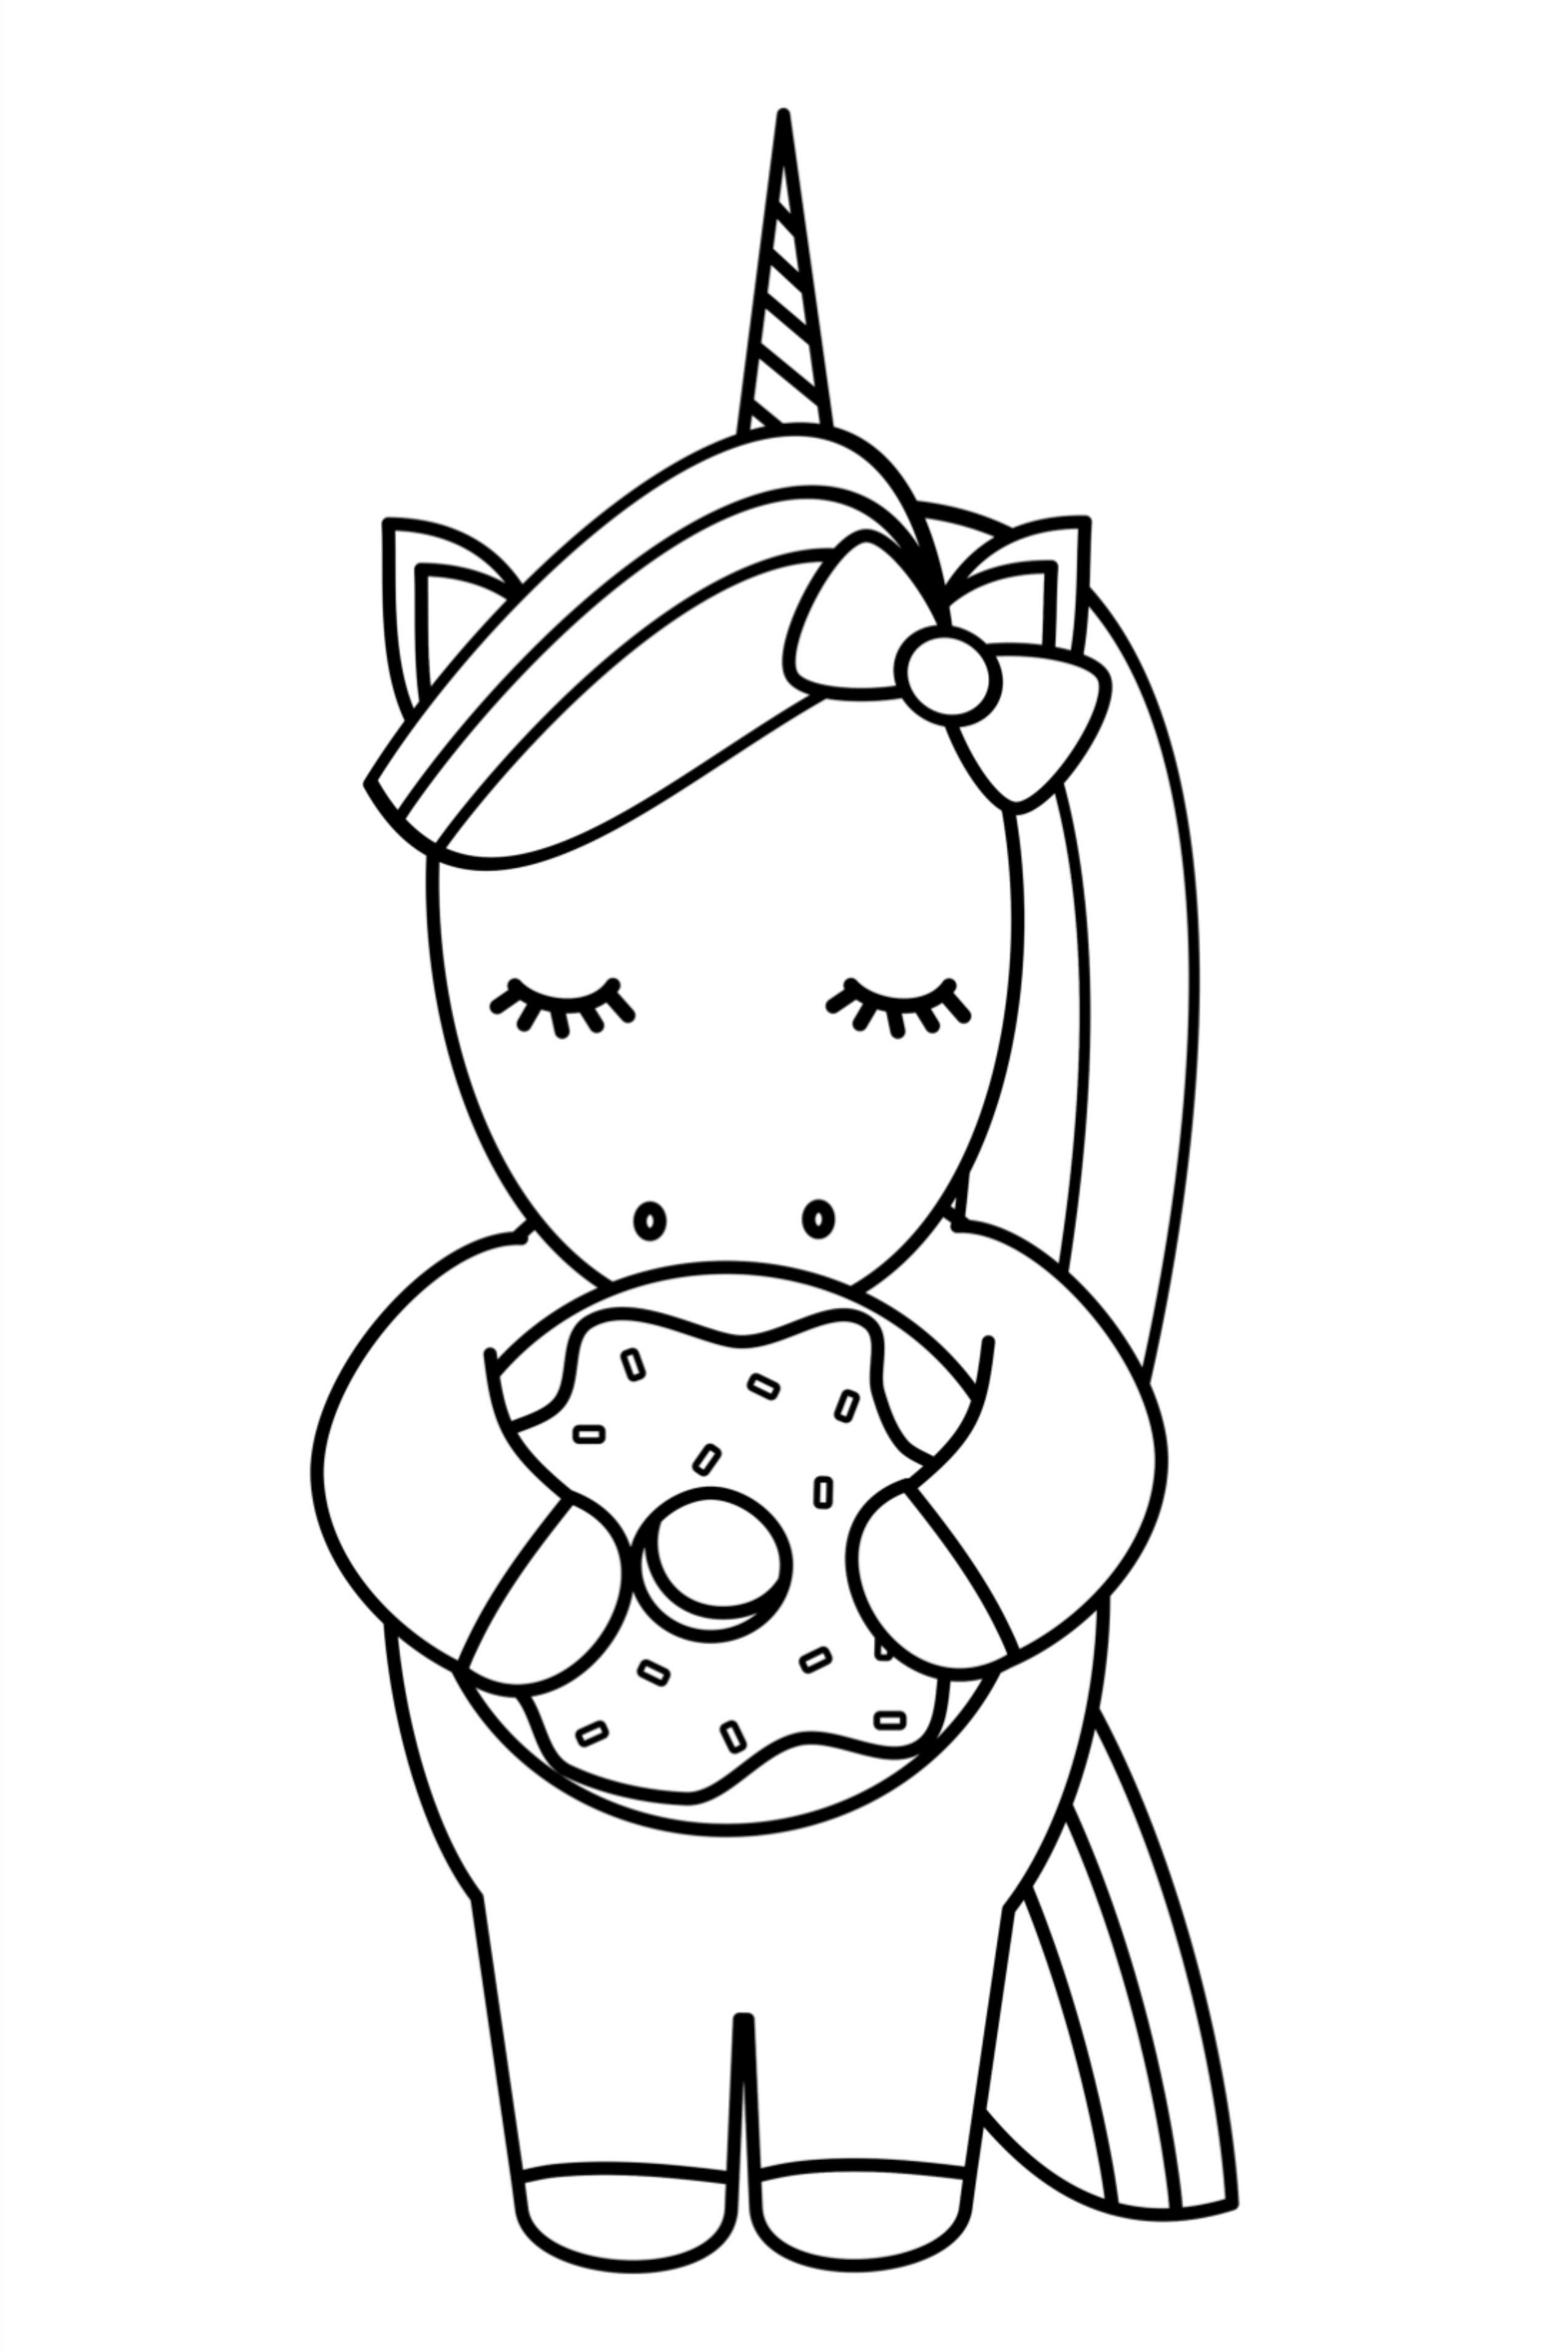 100 Unicorn Coloring Pages For Kids Unicorn Coloring Unicorn Coloring Pages For Kids Unicorn Coloring Pages